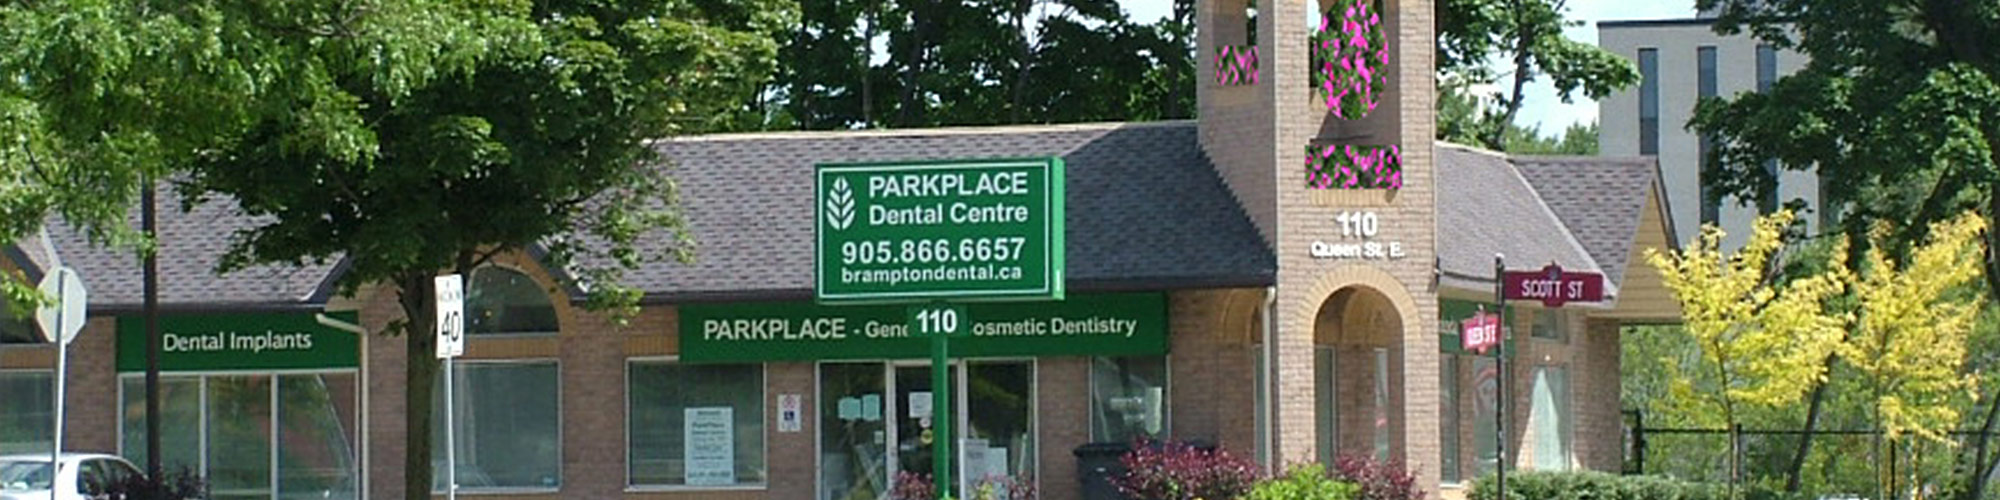 dental implants brampton